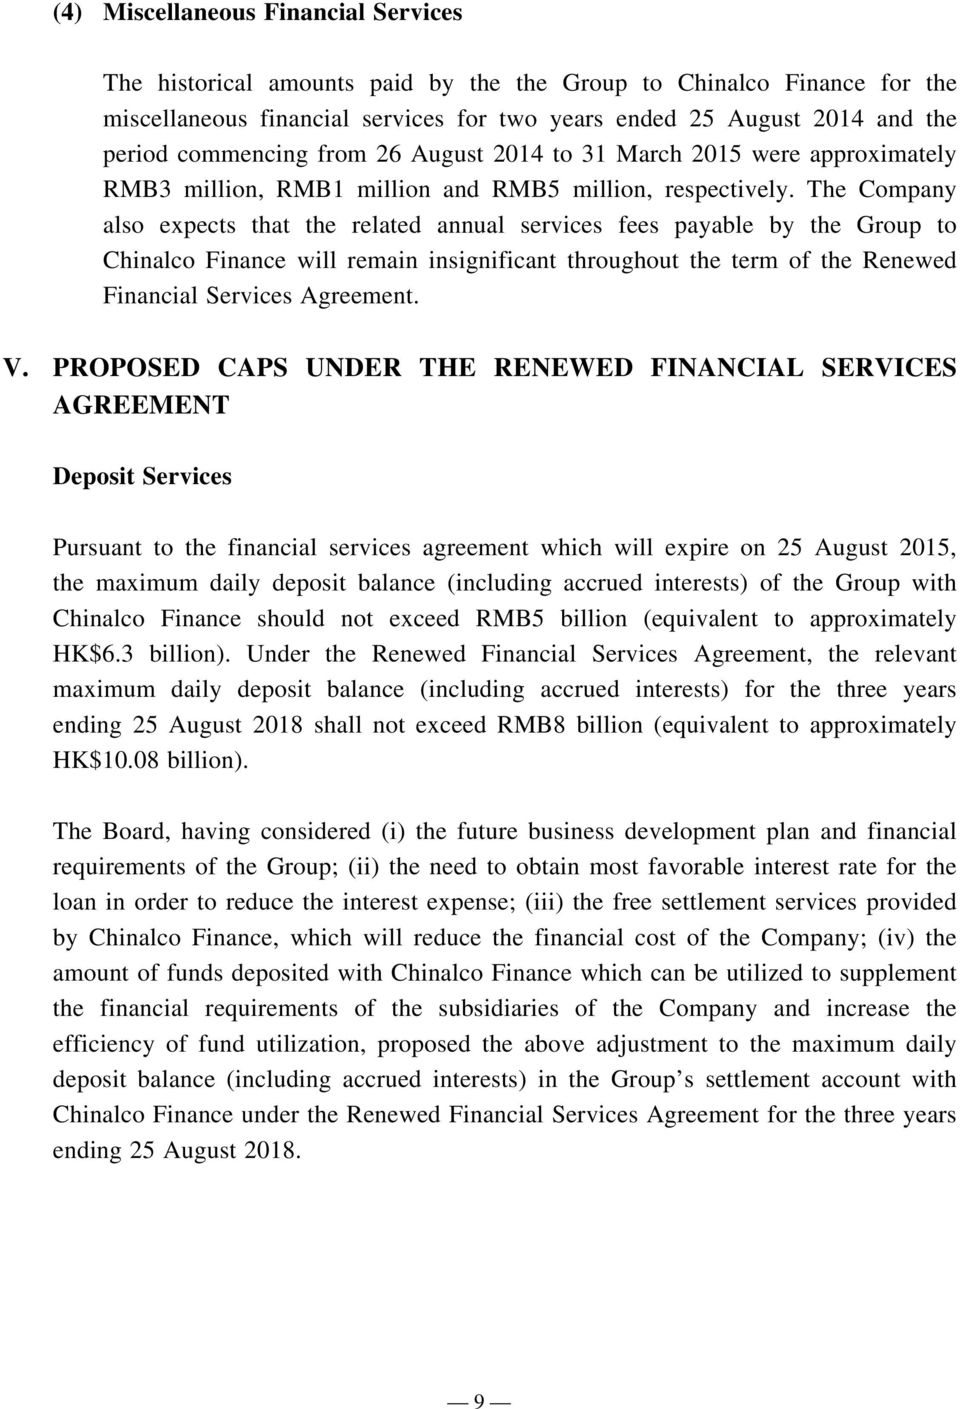 The Company also expects that the related annual services fees payable by the Group to Chinalco Finance will remain insignificant throughout the term of the Renewed Financial Services Agreement. V.